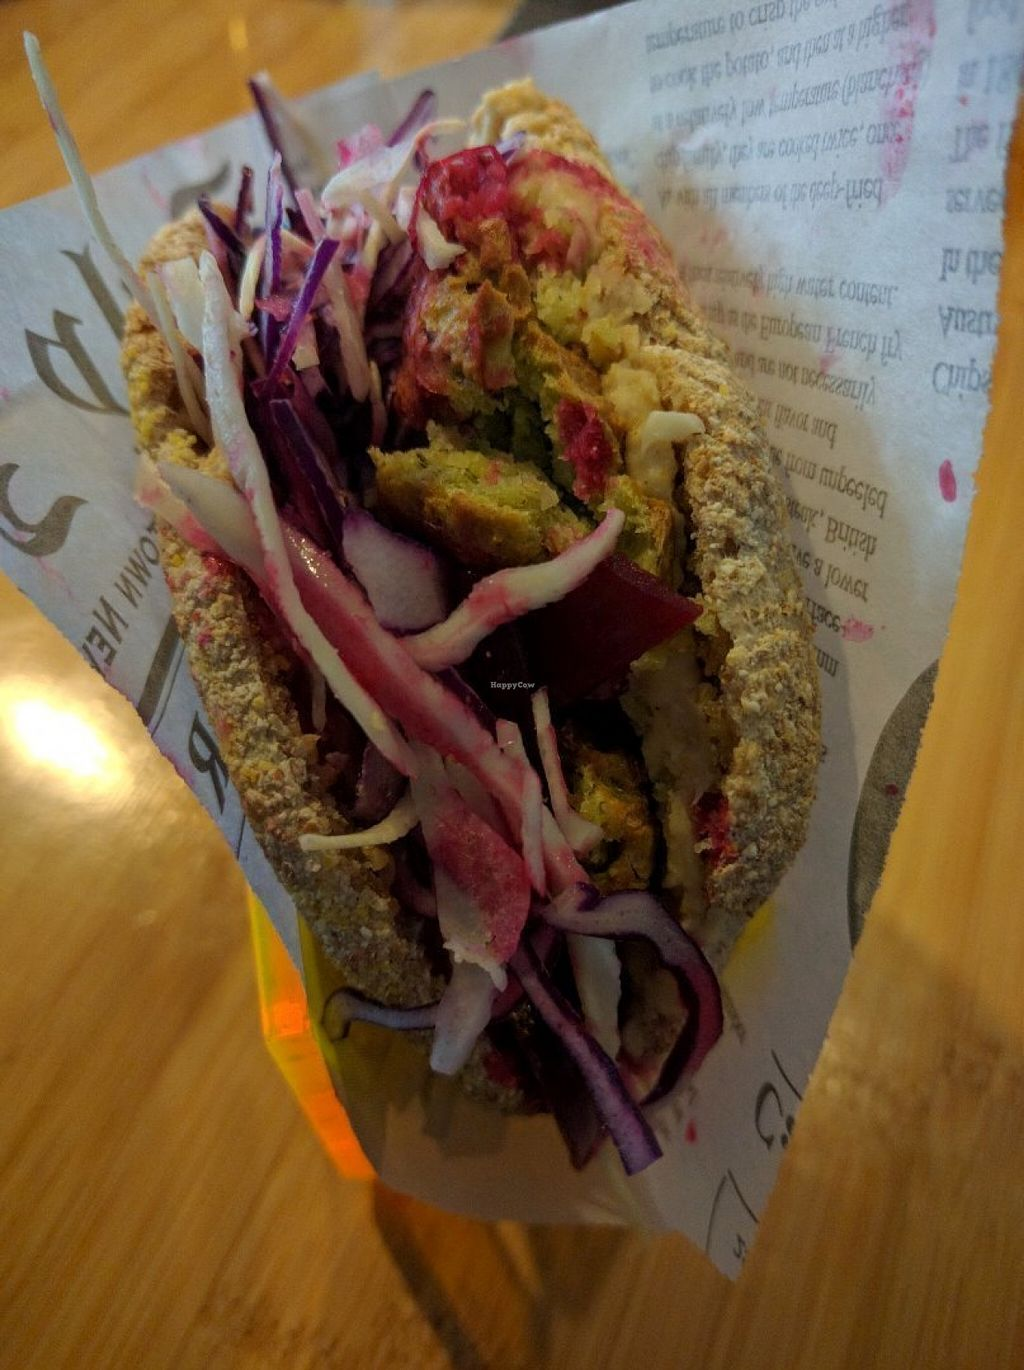 """Photo of CLOSED: Botaniq  by <a href=""""/members/profile/Sonja%20and%20Dirk"""">Sonja and Dirk</a> <br/>falafel sandwich <br/> July 27, 2016  - <a href='/contact/abuse/image/28200/162769'>Report</a>"""